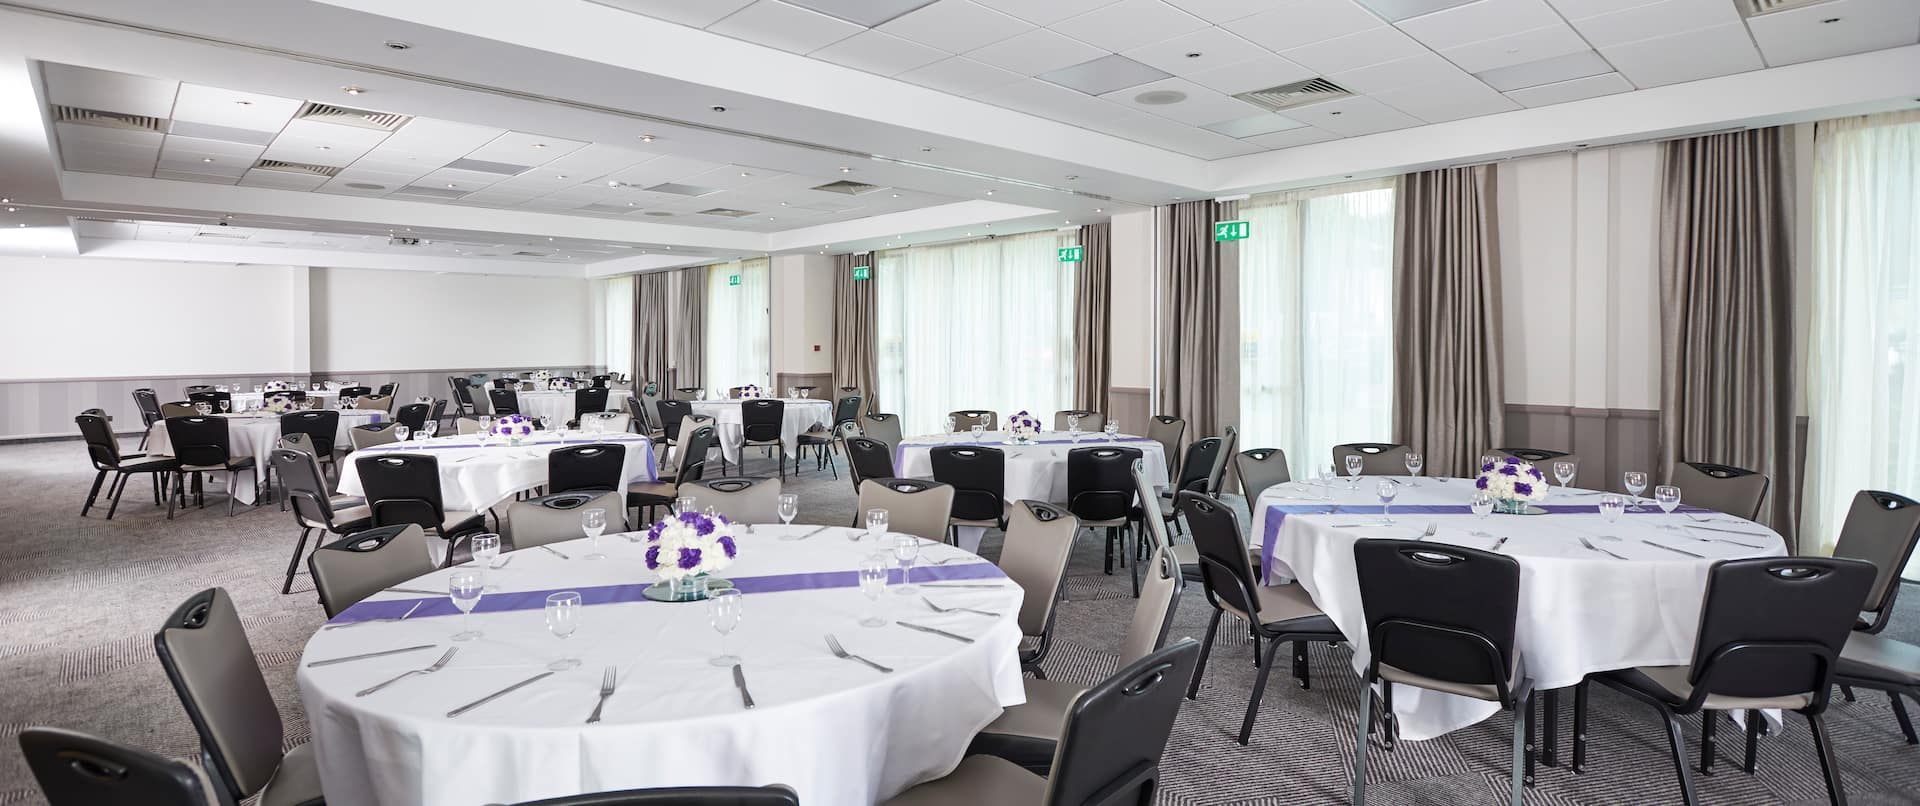 Meeting Room Set Up for Social Event With Large Windows, Grey Chairs, Round Tables With Place Settings and Flowers on White Linens